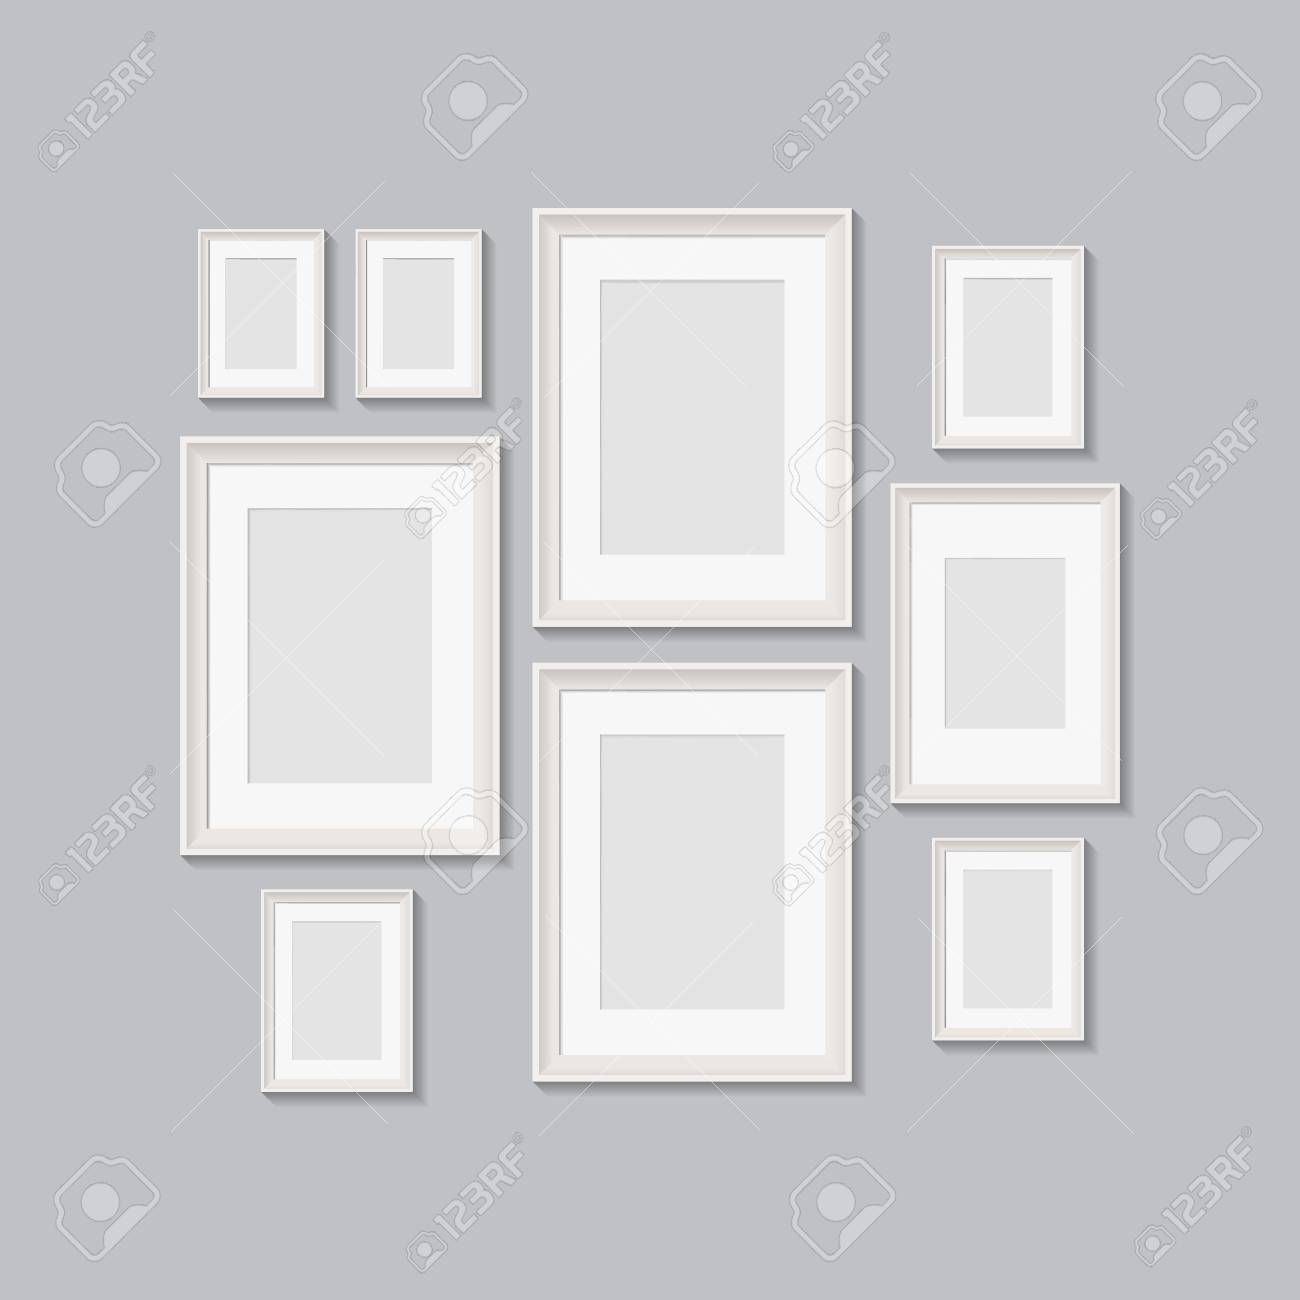 blank picture frames for photographs. vector realisitc mockup with borders. design template on transparent background - 126306726